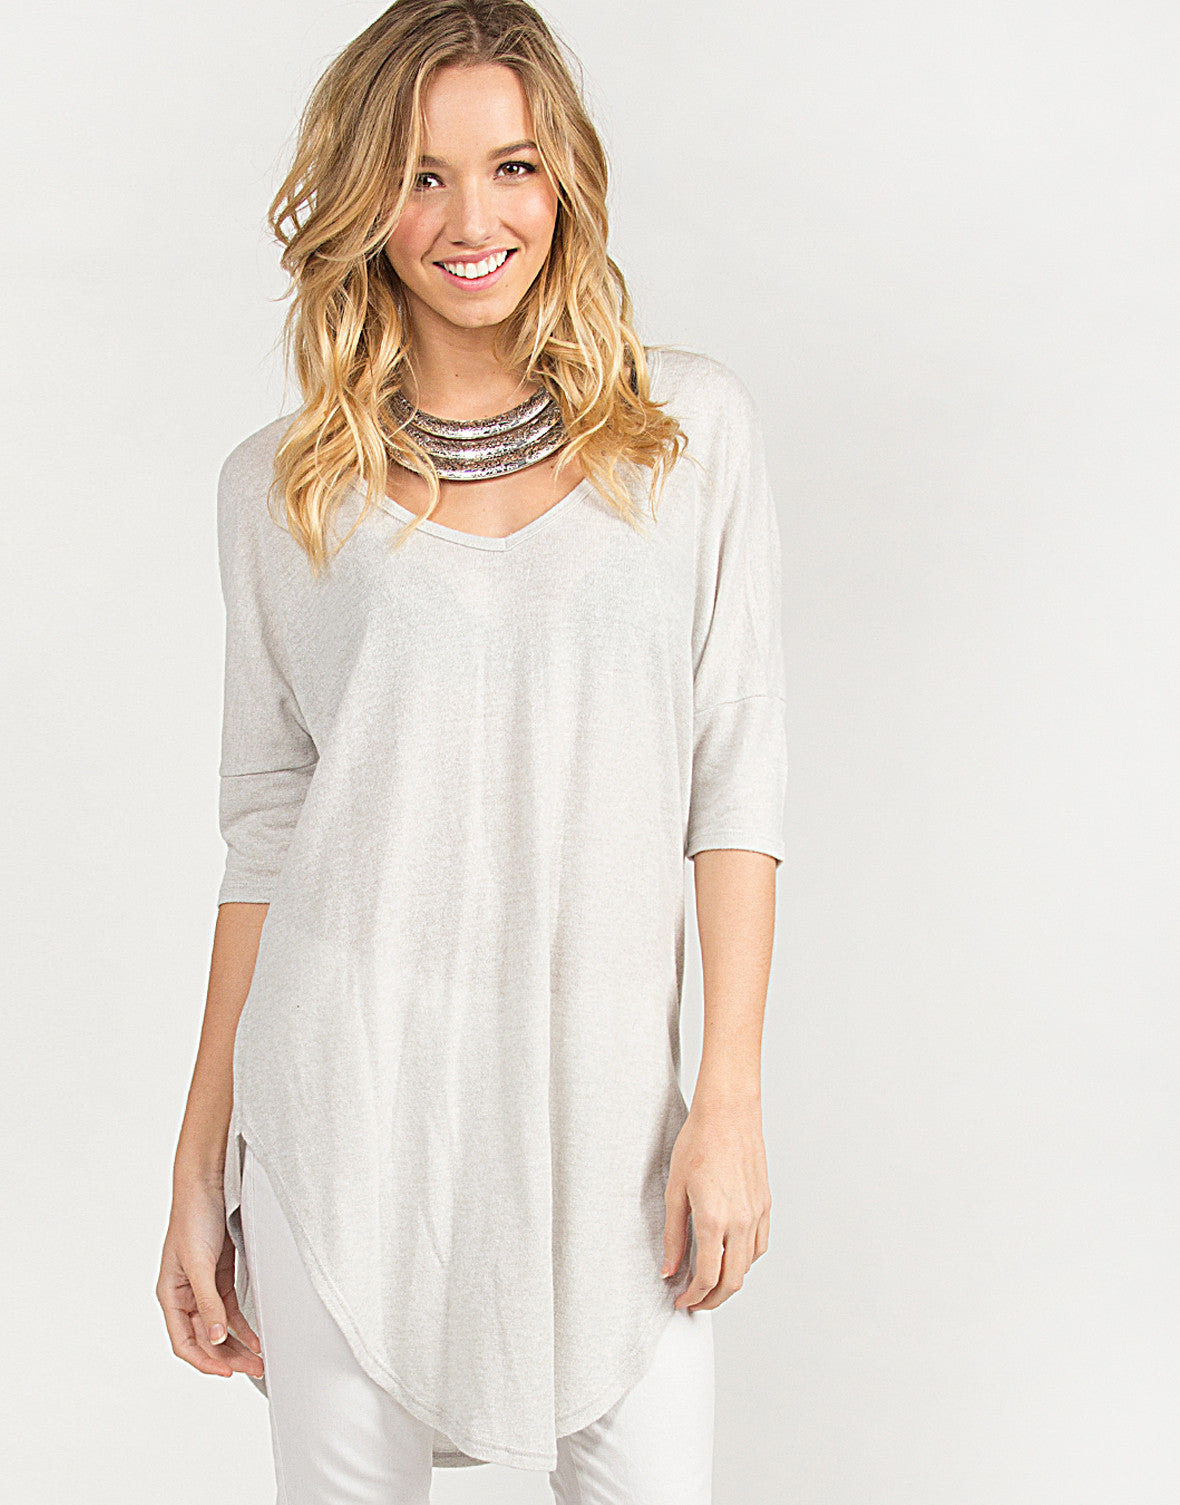 Oversized Scoop V-Neck Top